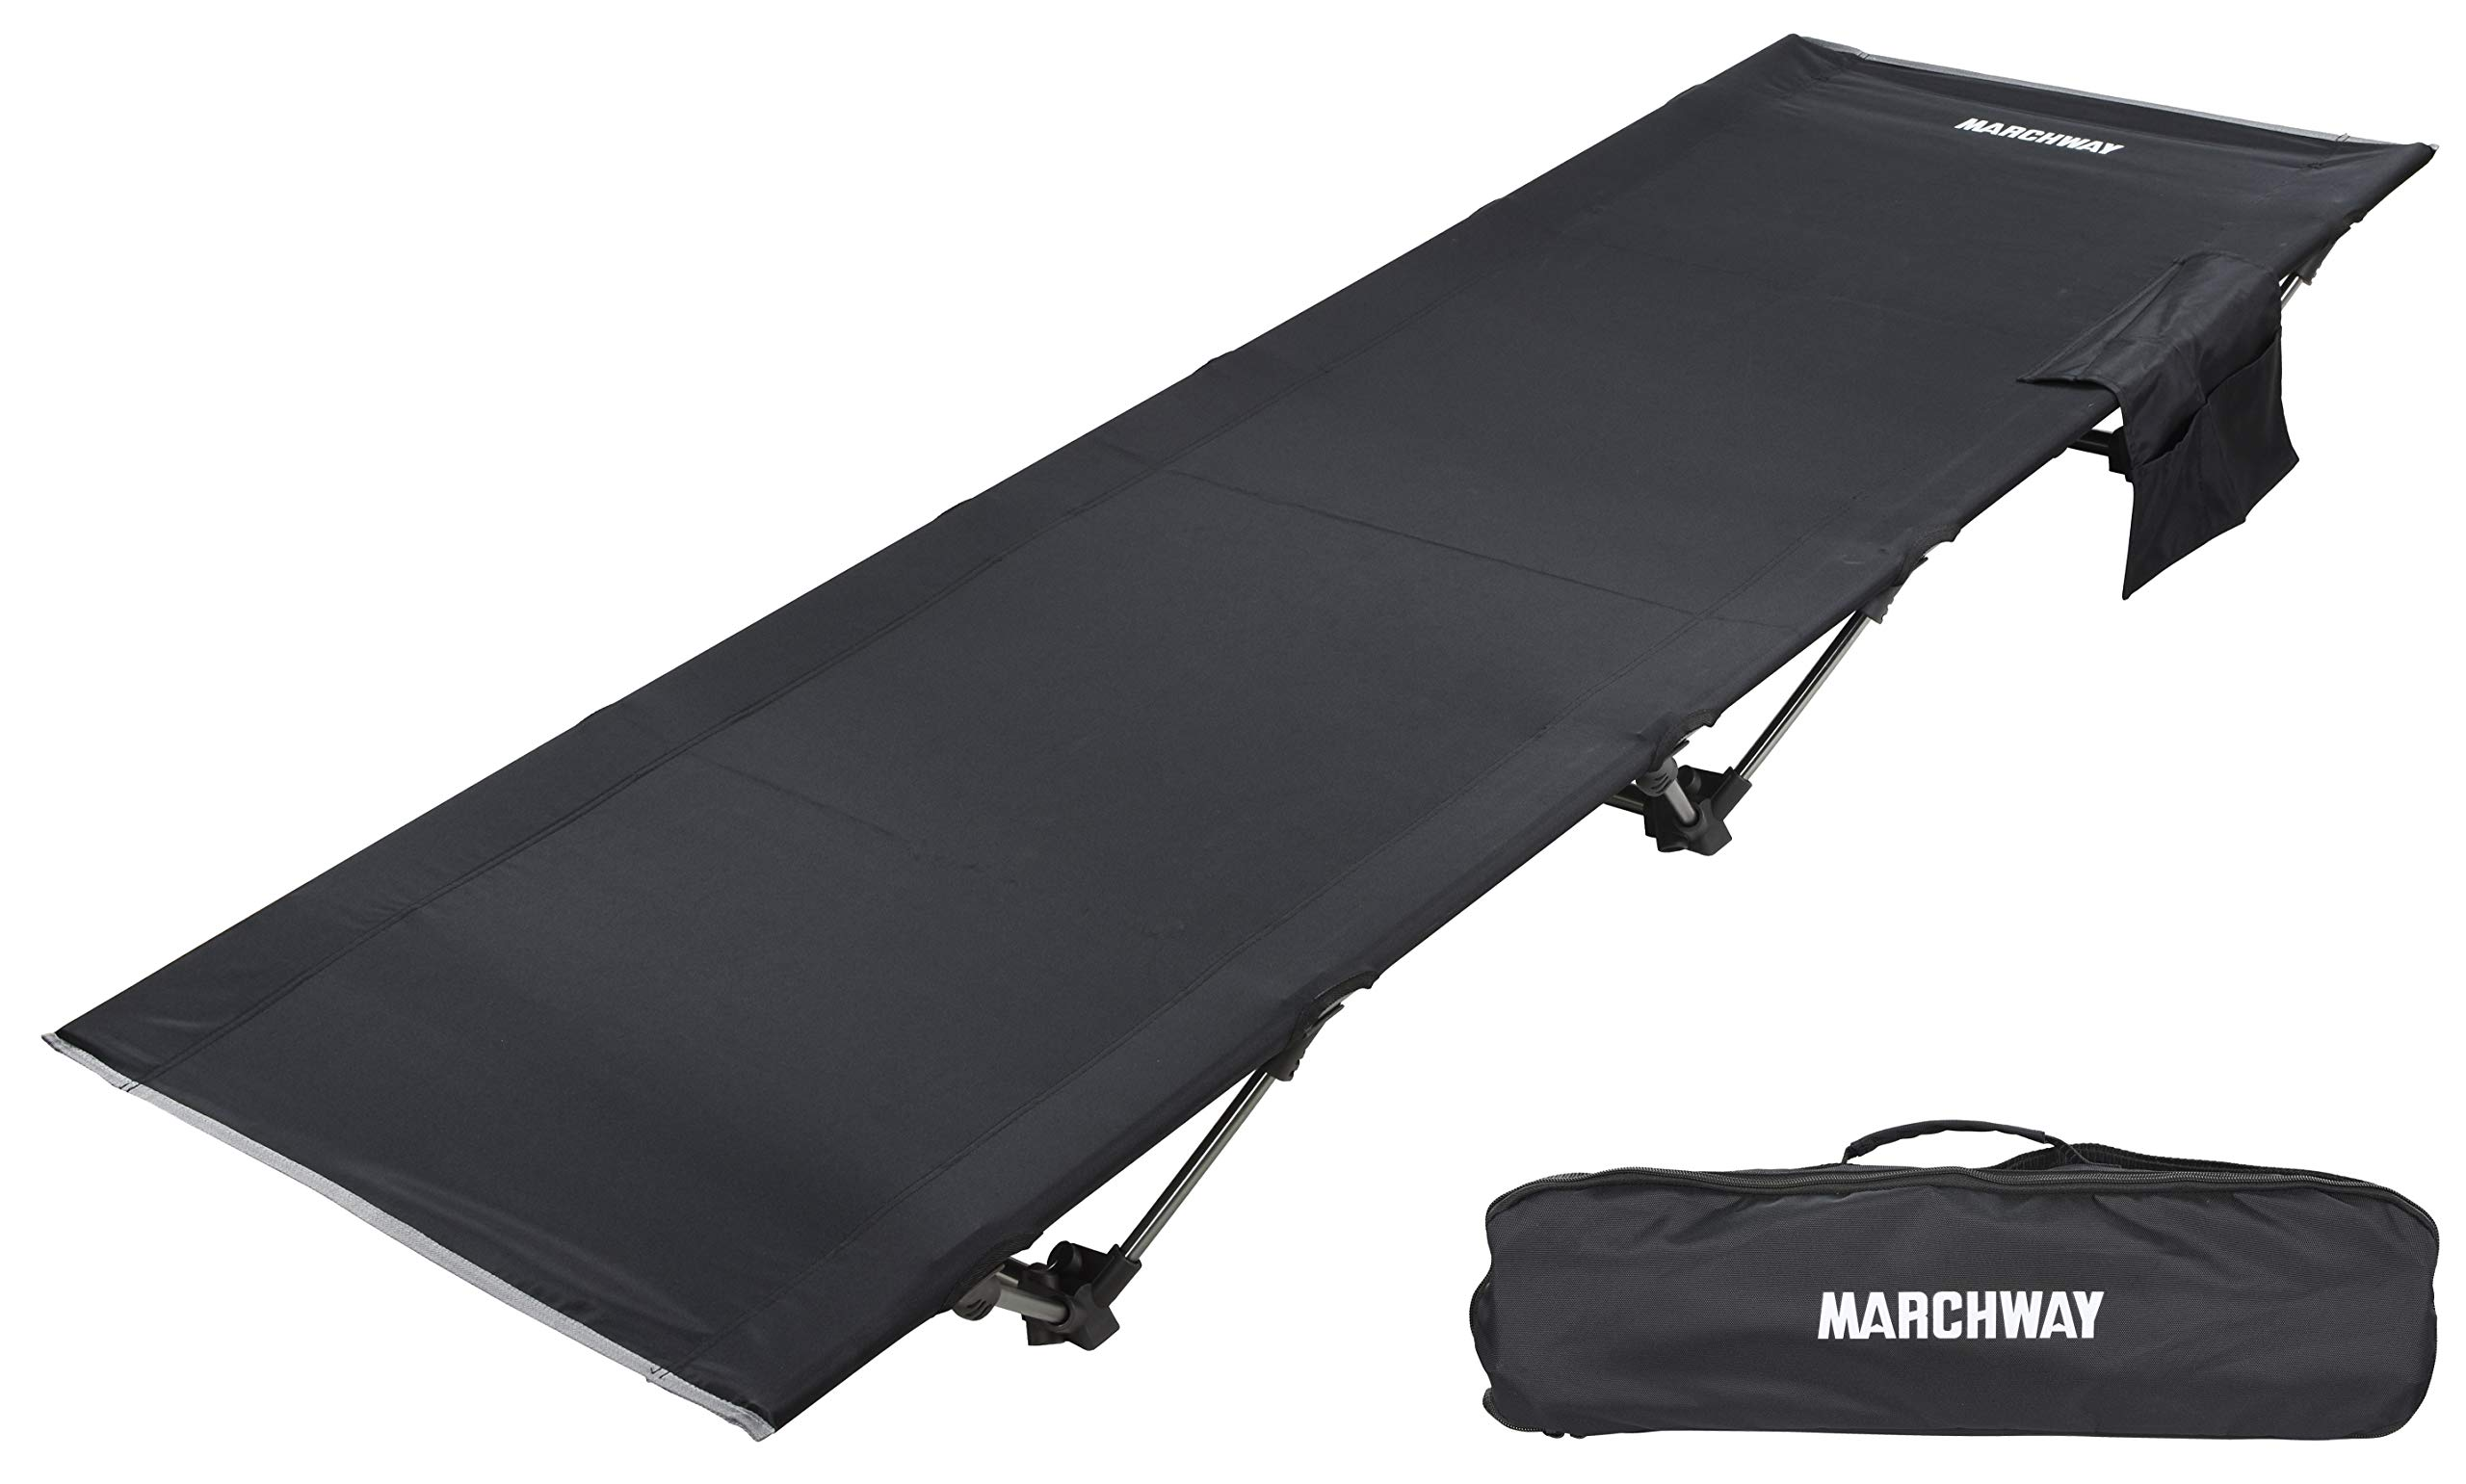 MARCHWAY Lightweight Folding Tent Camping Cot Bed, Portable Compact for Outdoor Travel, Base Camp, Hiking, Mountaineering, Backpacking by MARCHWAY